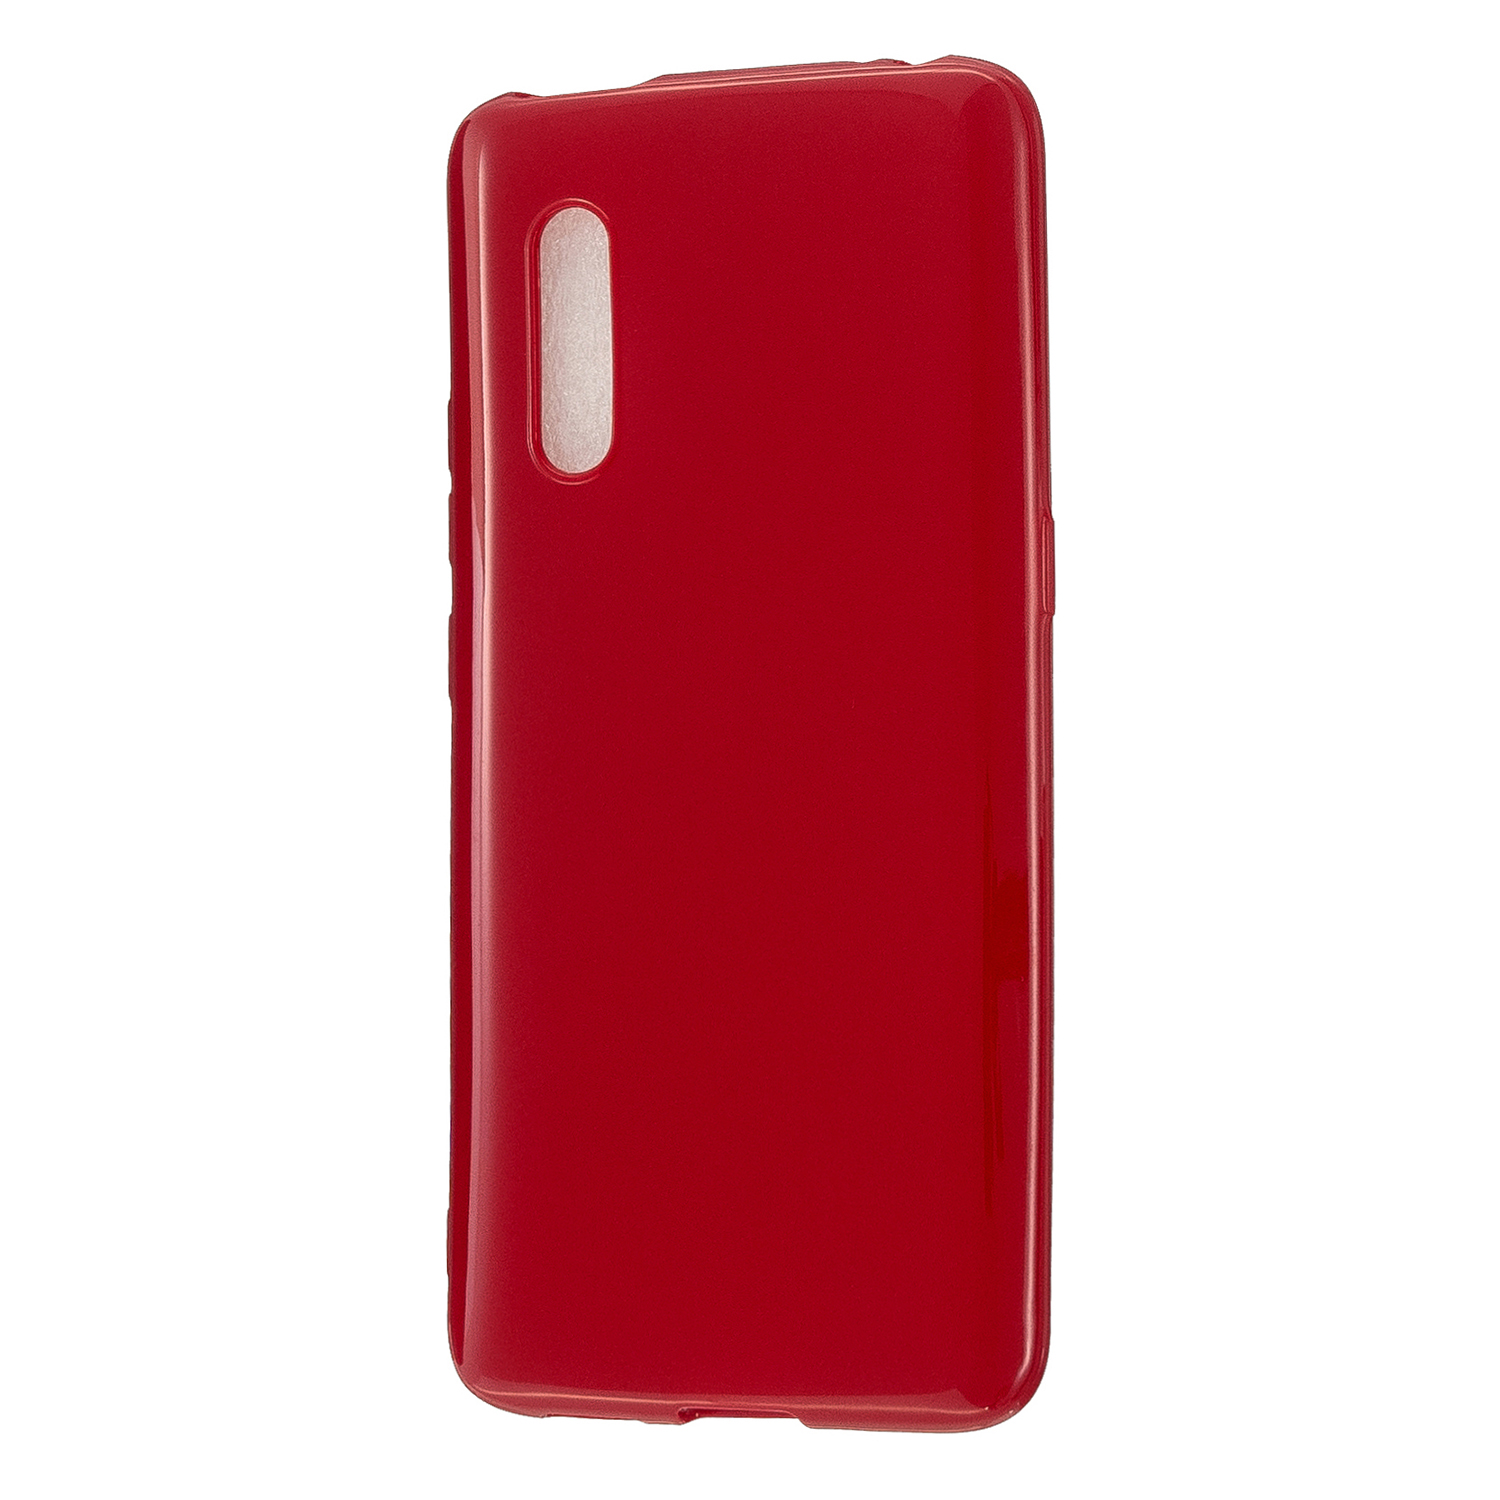 For VIVO X27 / VIVO X27 Pro Cellphone Cover Anti-scratch Dust-proof Soft TPU Phone Protective Case  Rose red